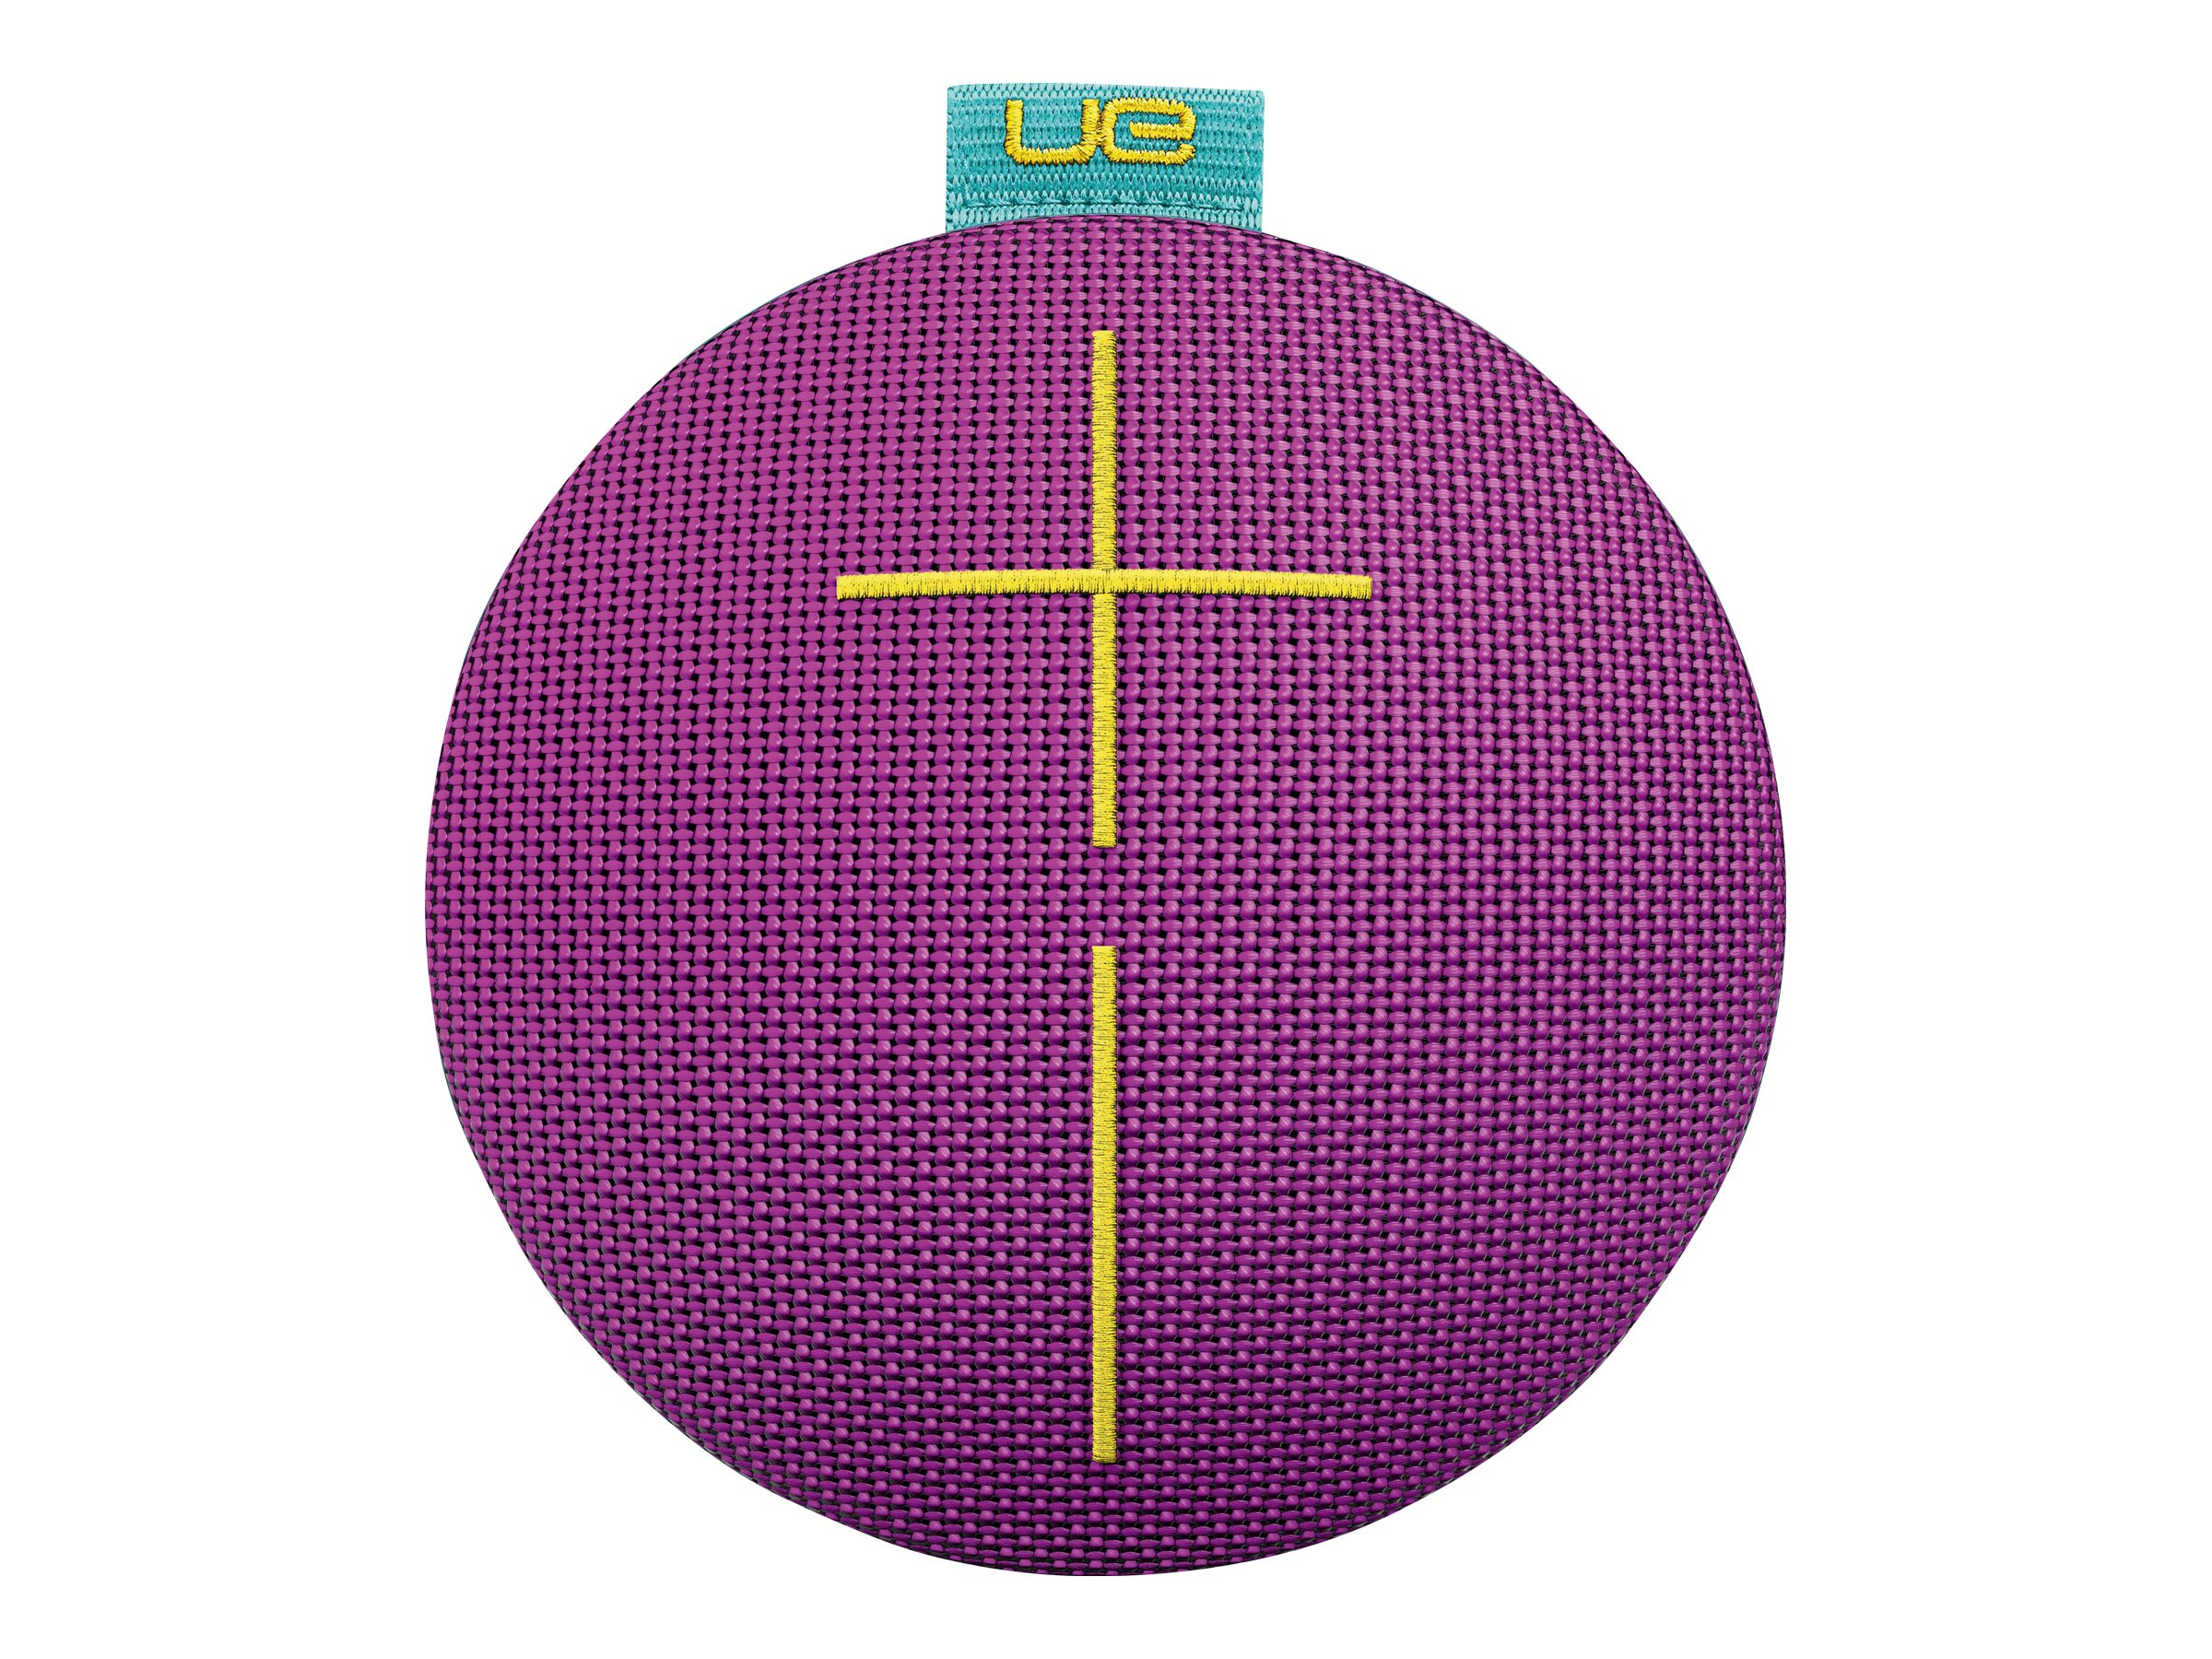 Logitech UE Roll Wireless Speaker, Sugarplum, 984-000517, 30970024, Speakers - Audio